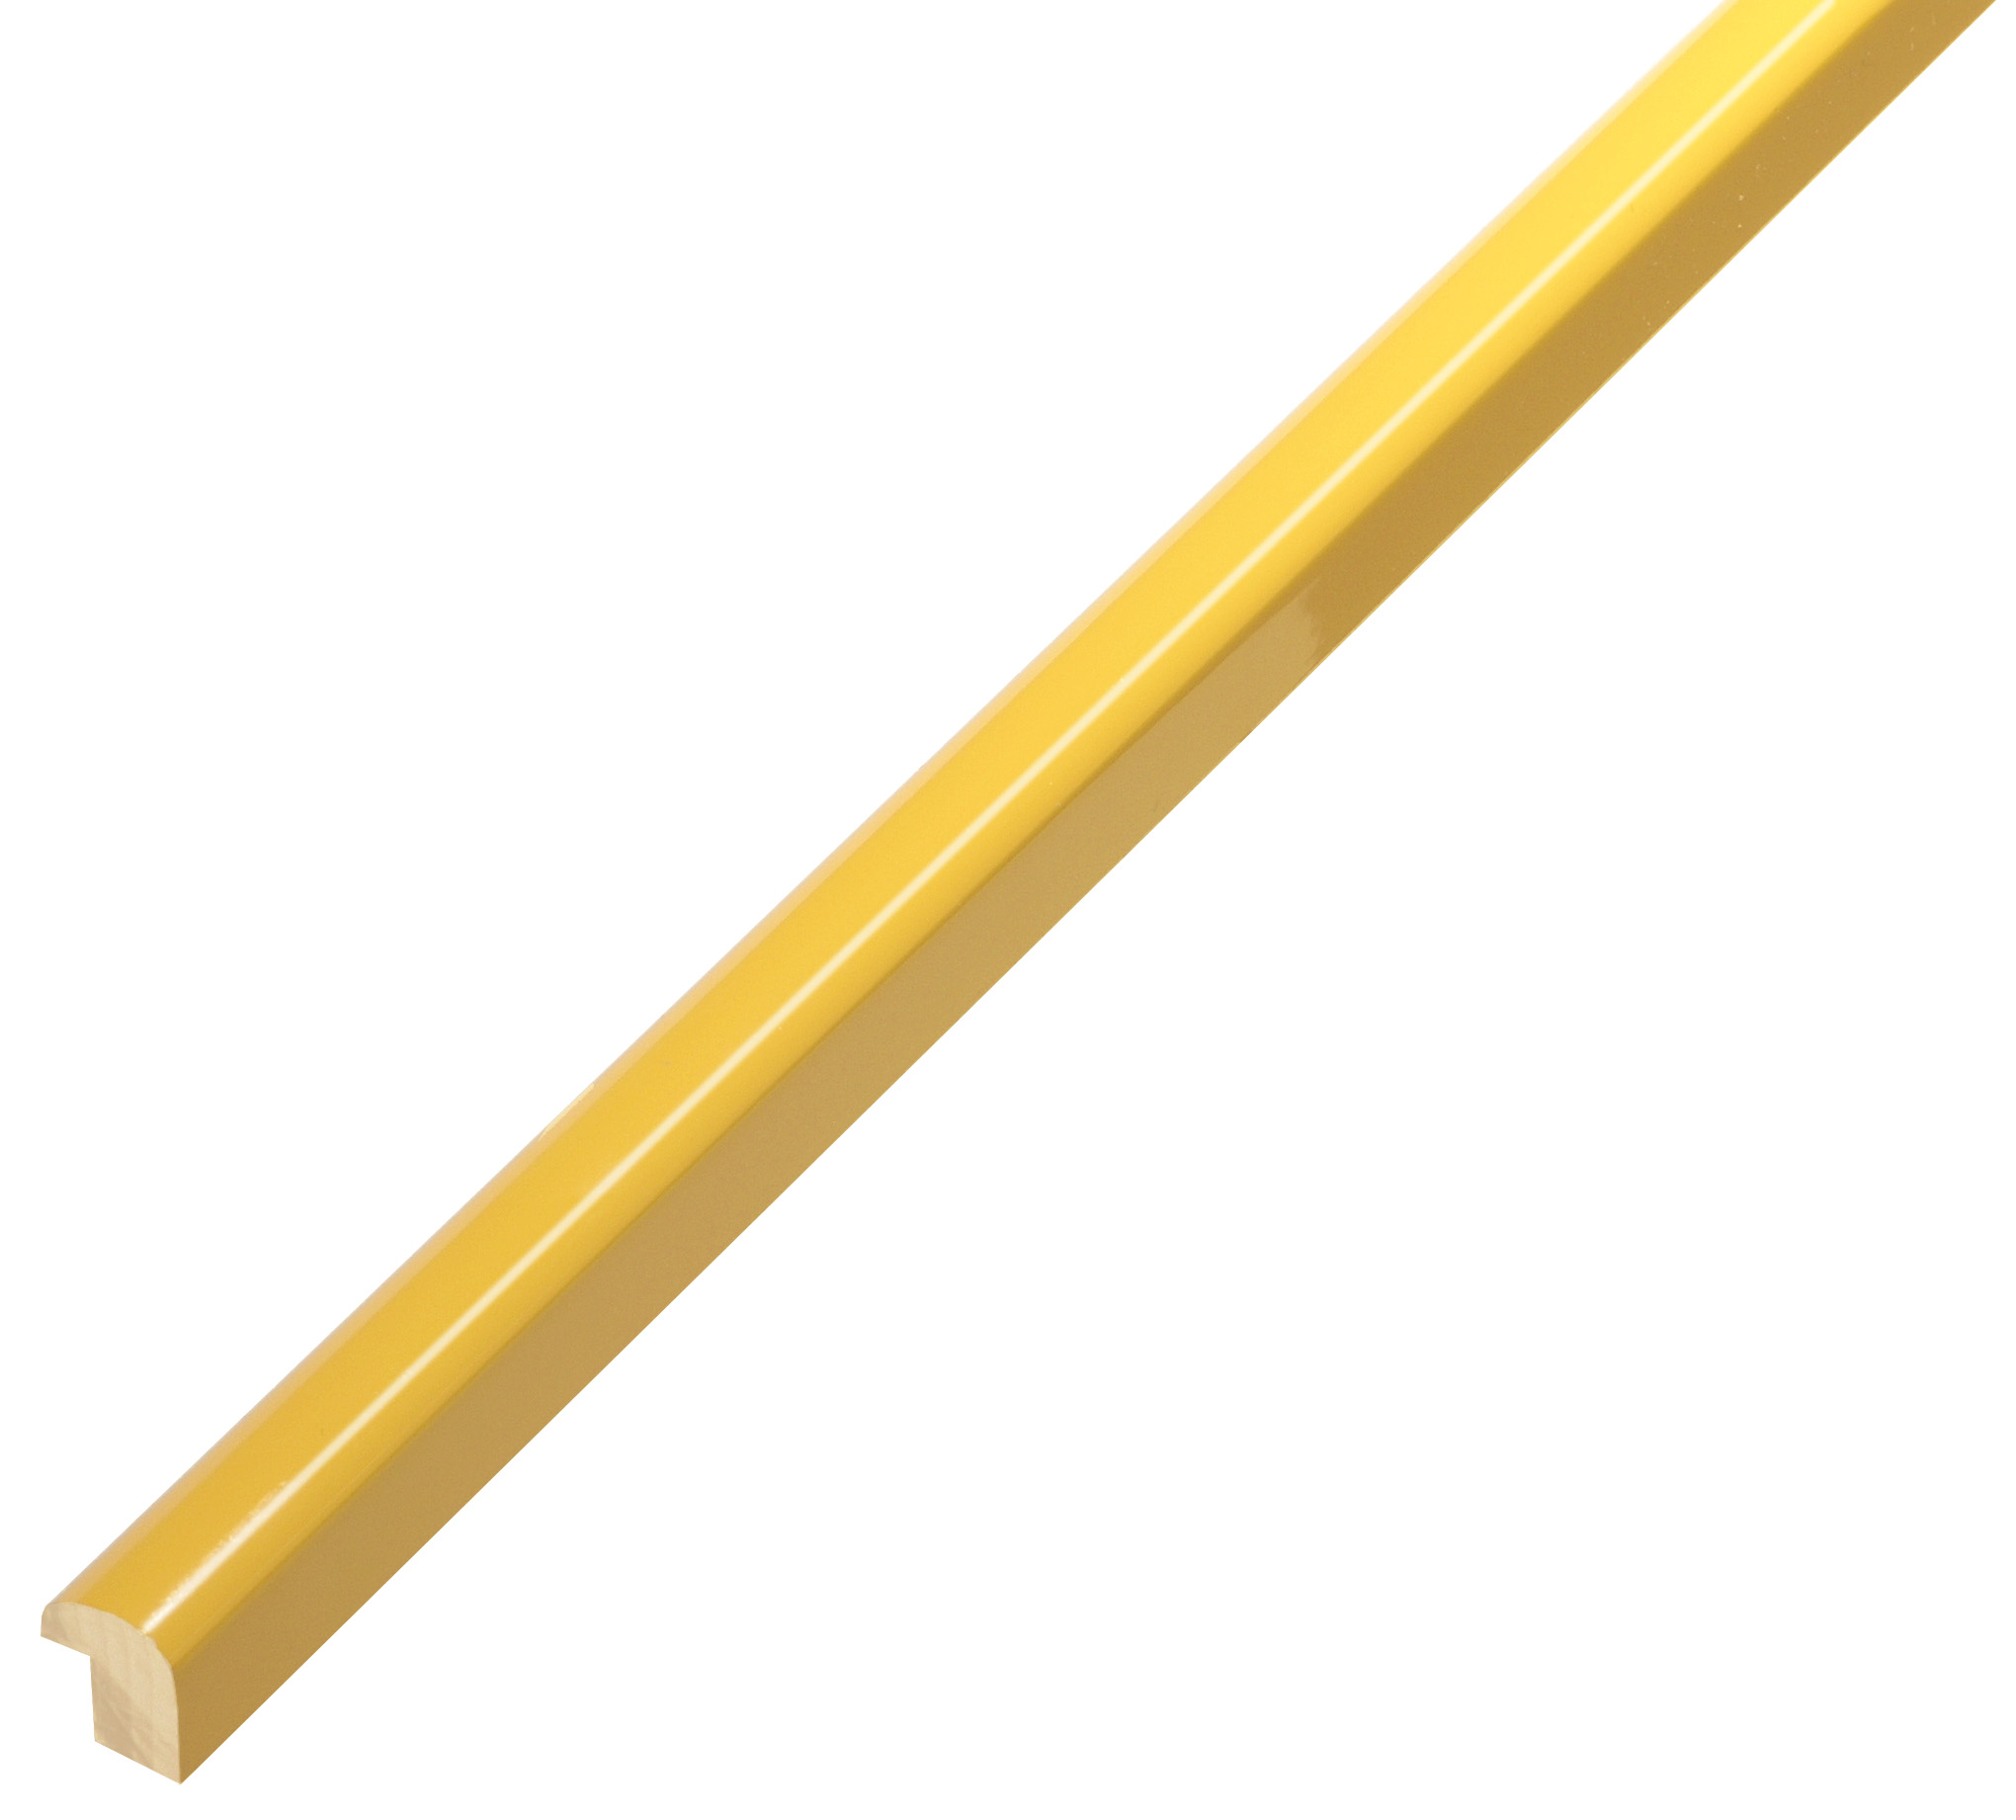 Sample 20cm of moulding 215GIALLO